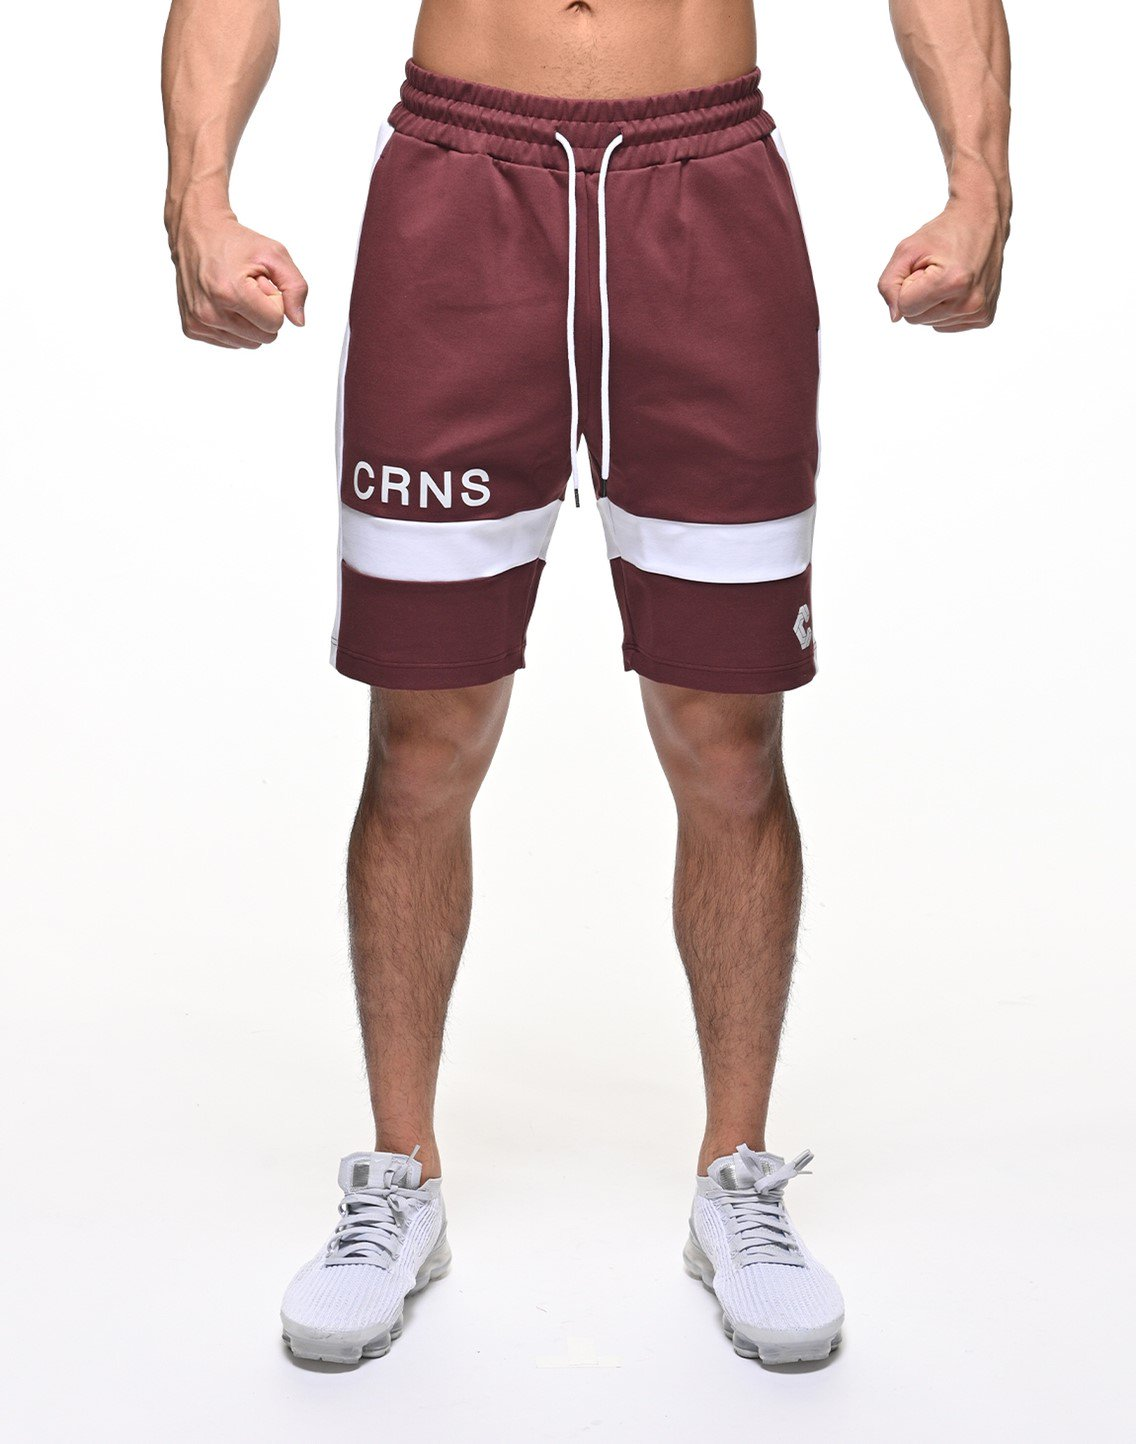 <img class='new_mark_img1' src='https://img.shop-pro.jp/img/new/icons55.gif' style='border:none;display:inline;margin:0px;padding:0px;width:auto;' />CRNS THICK LINE SHORTS【BORDEAUX】